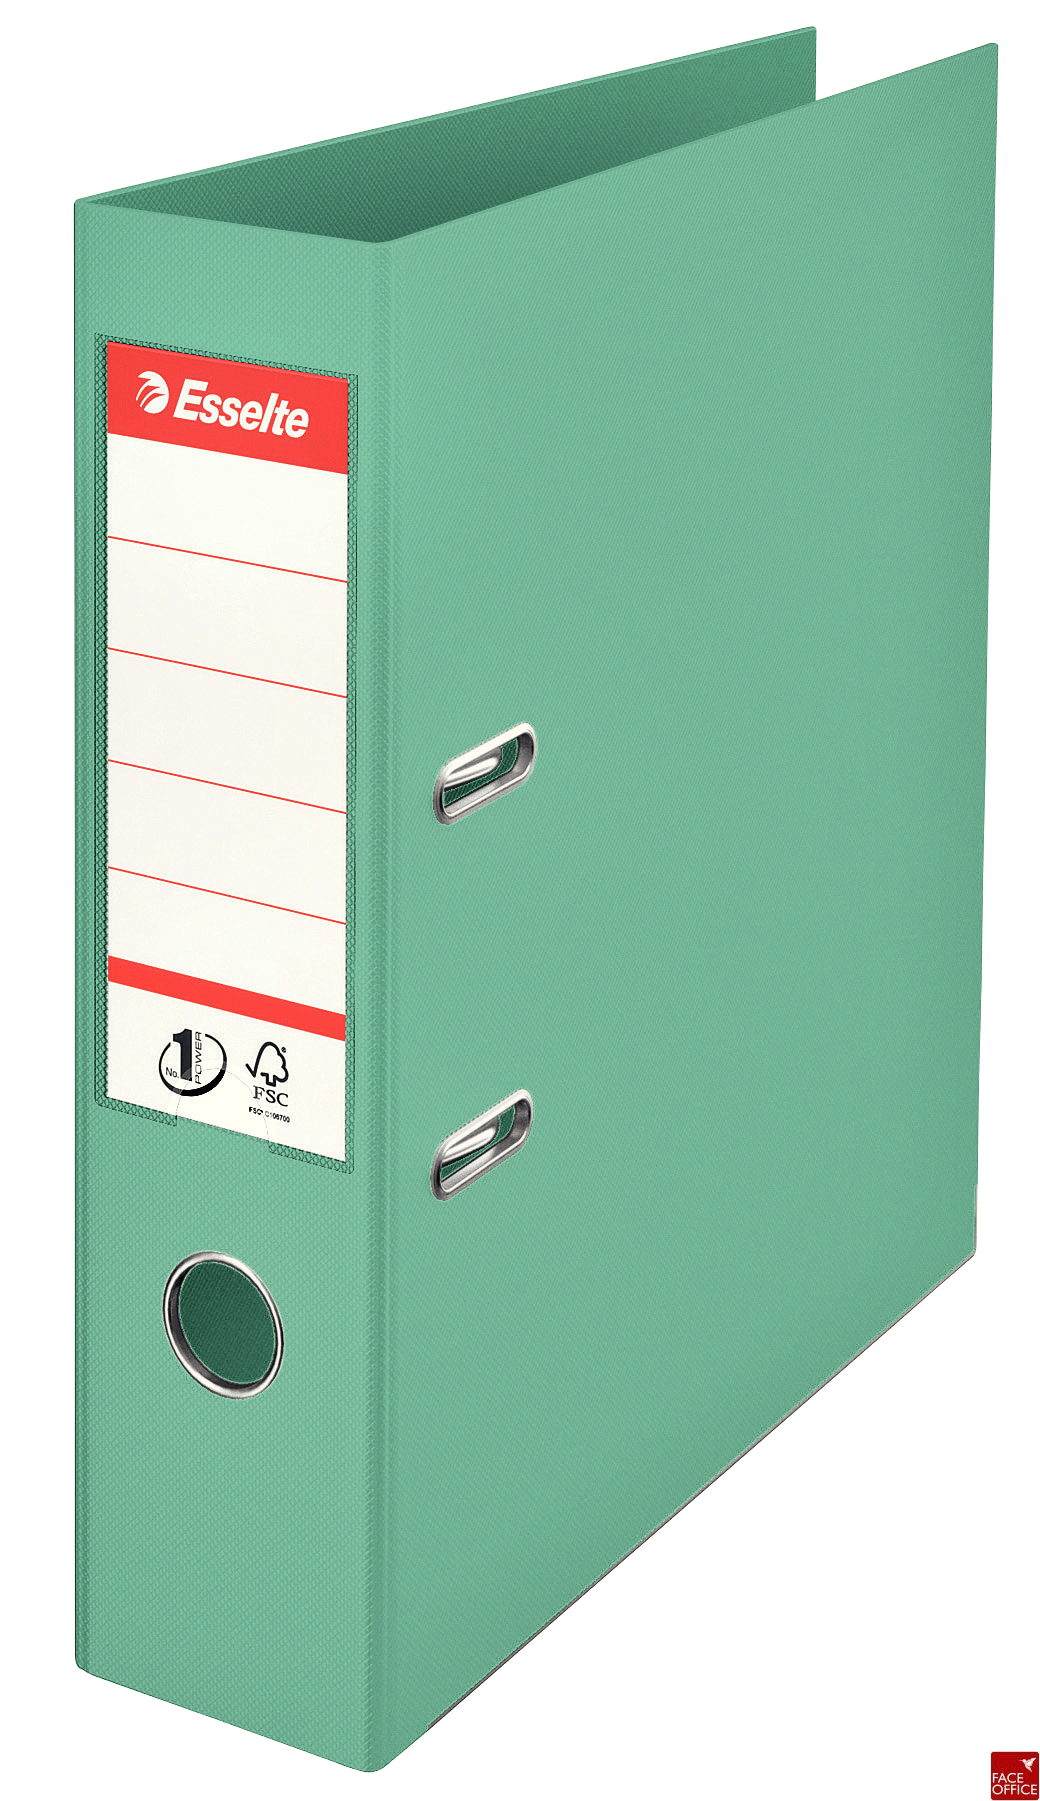 Segregator Esselte No.1 Colour